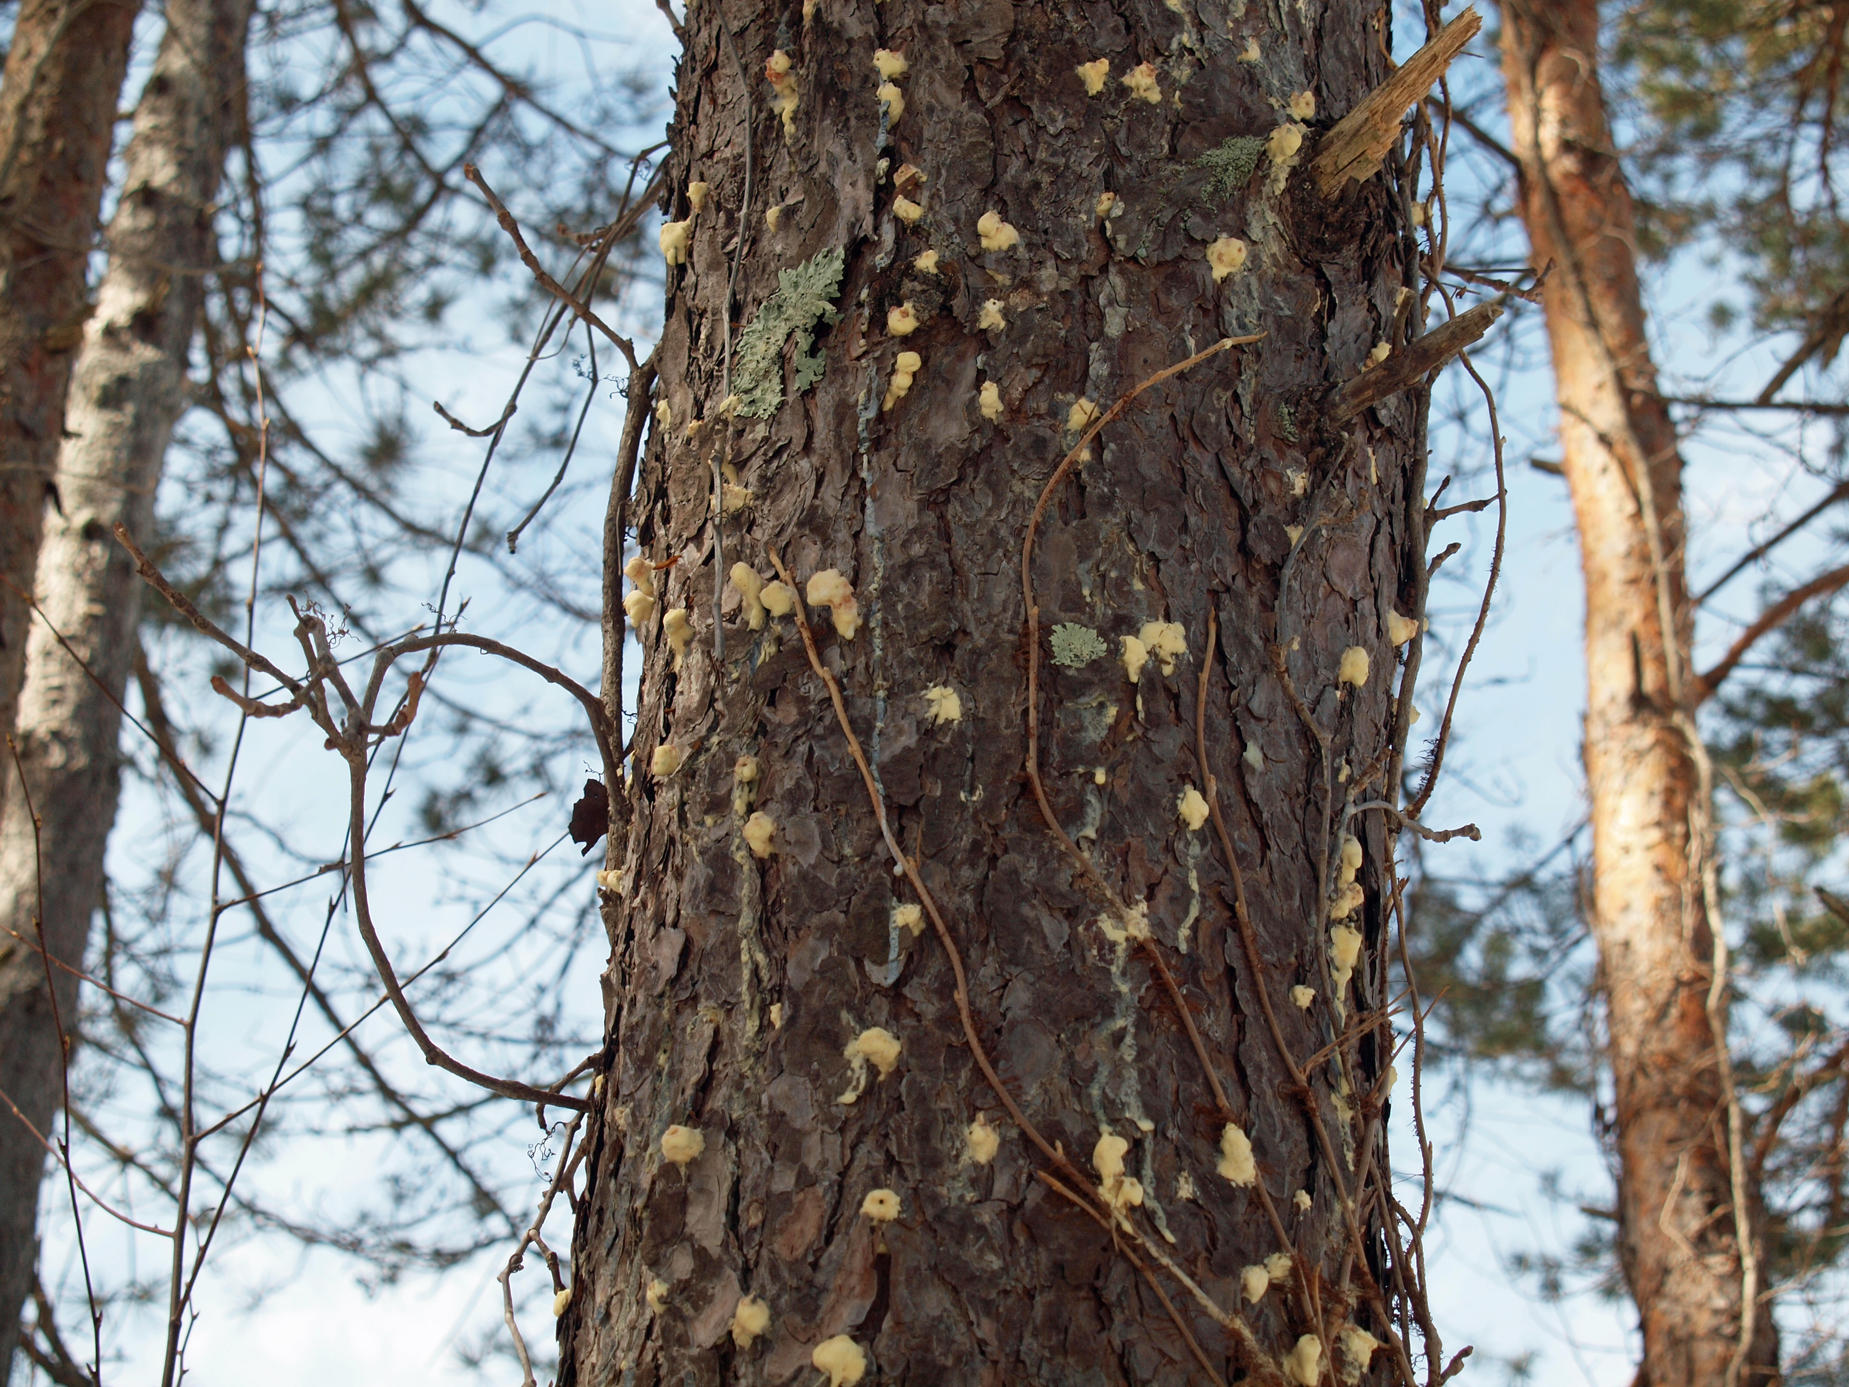 pine beetle essay 24 brunelle et al (2008) [21] demonstrated that the presence of mountain pine  beetle, d ponderosae  with other bark beetle species, the dynamics of spruce  beetle populations are influenced by interactions  essay, no.